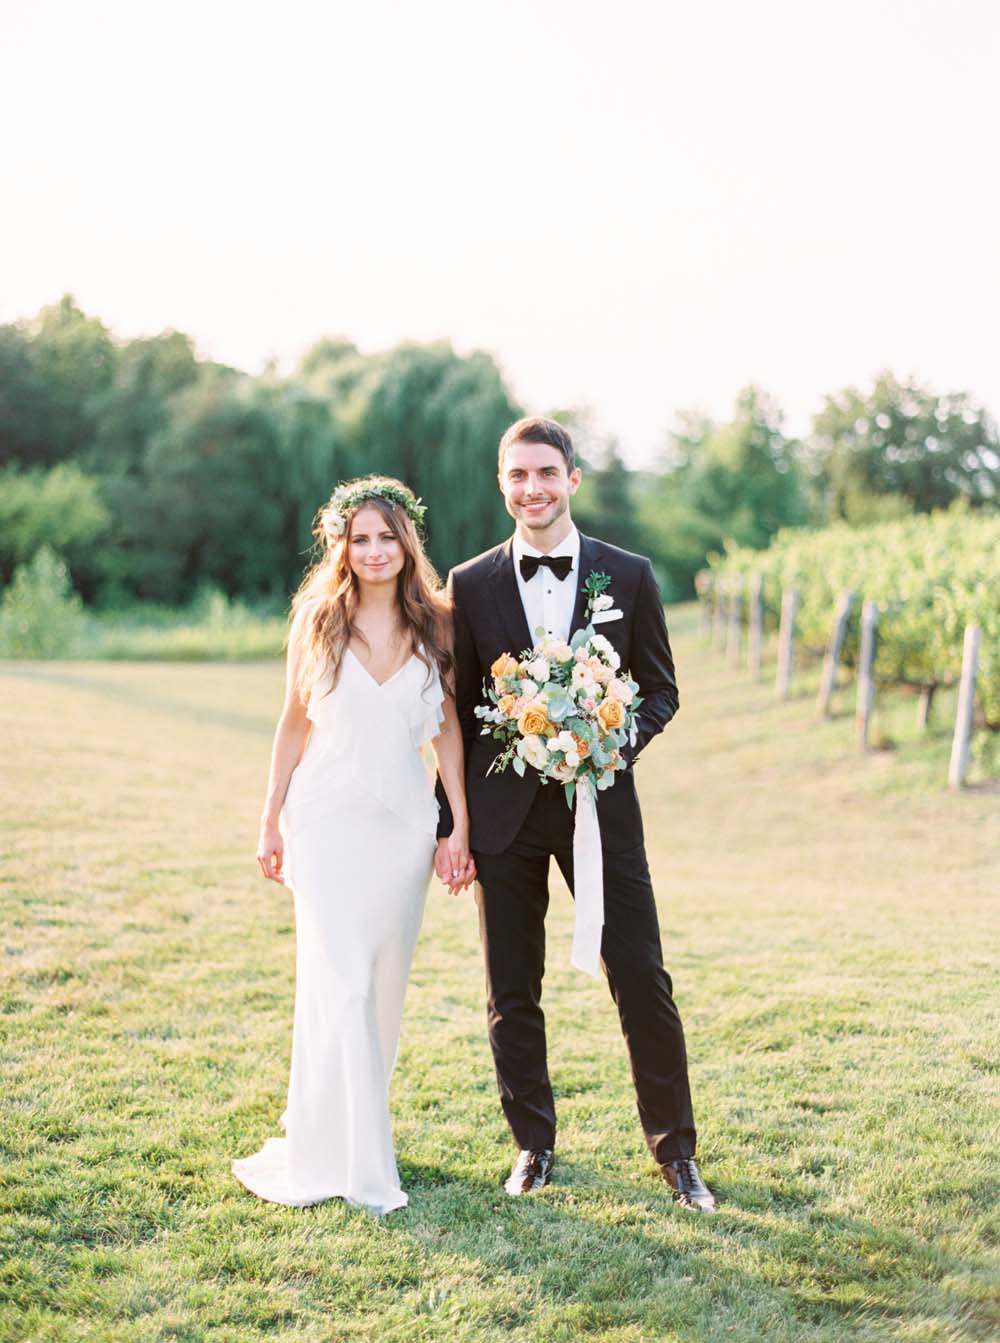 A Floral Peach Celebration in St. David's, Ontario - Bride and Groom